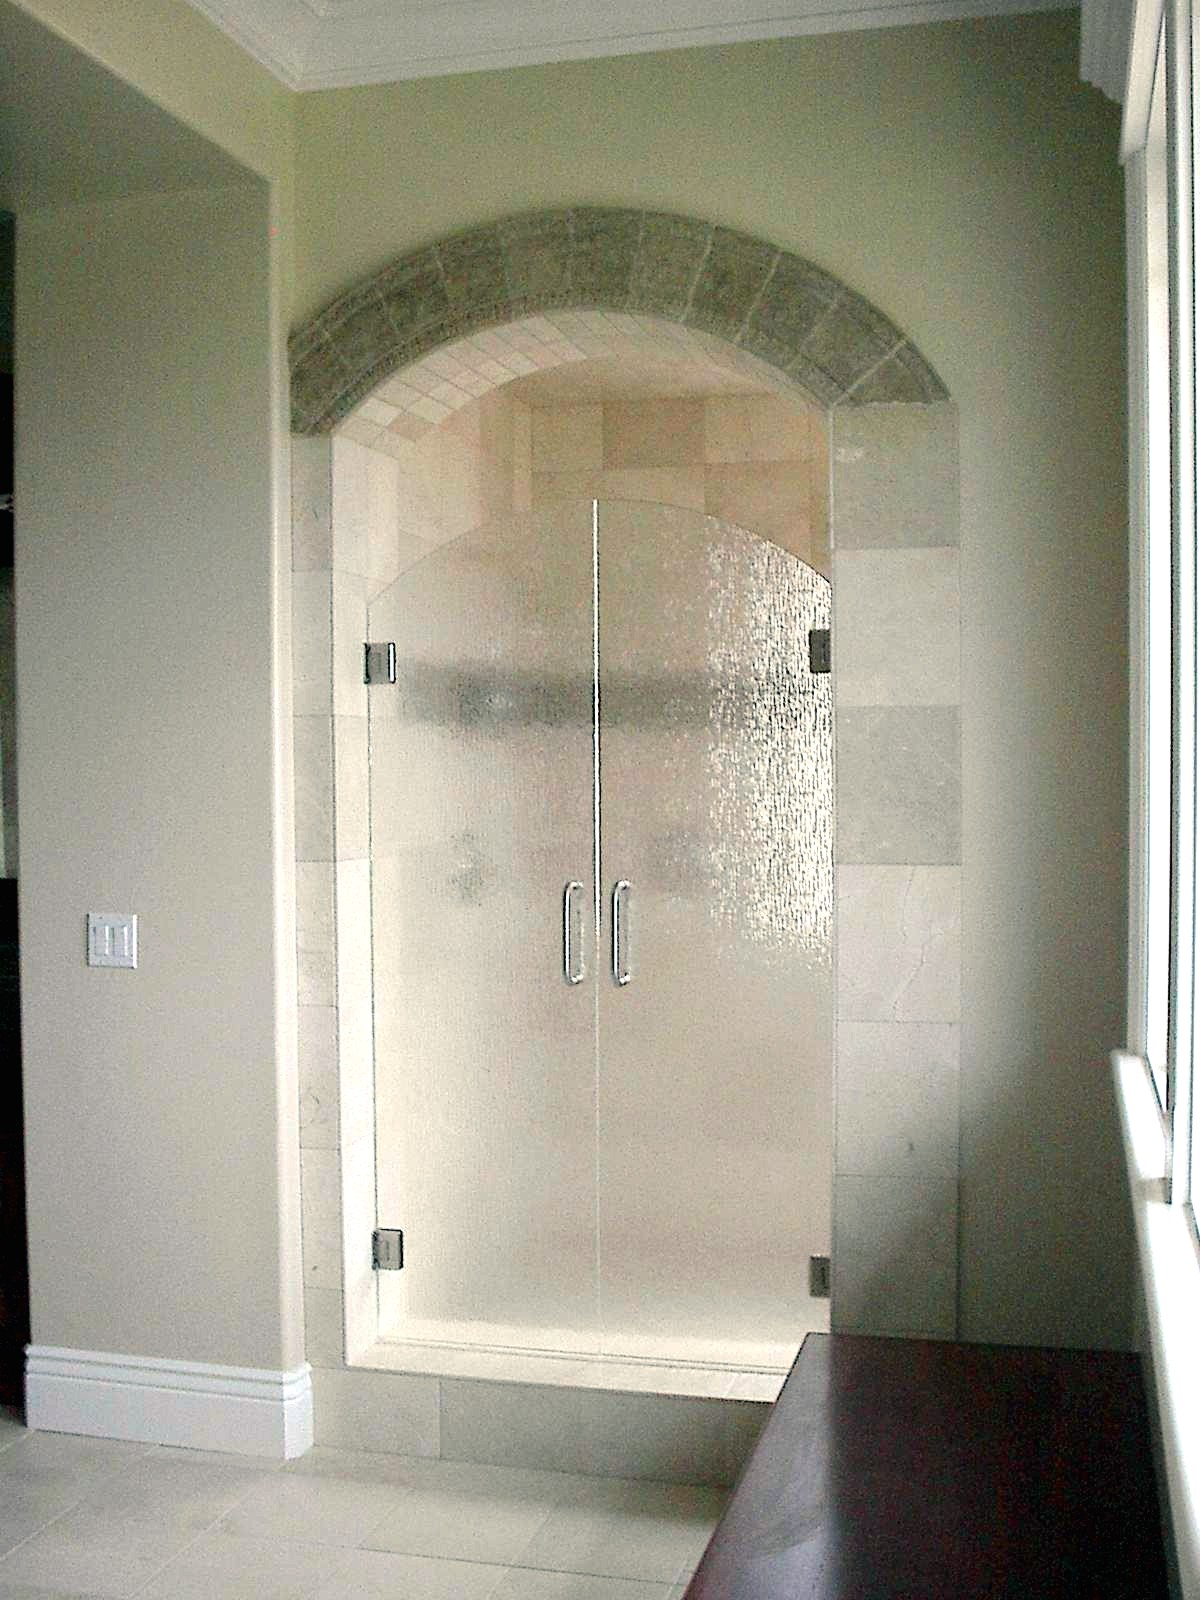 1600 #766855 Swinging Glass Shower Doors With Arched Top And Decorative Glass picture/photo Arched Doors With Glass 42191200